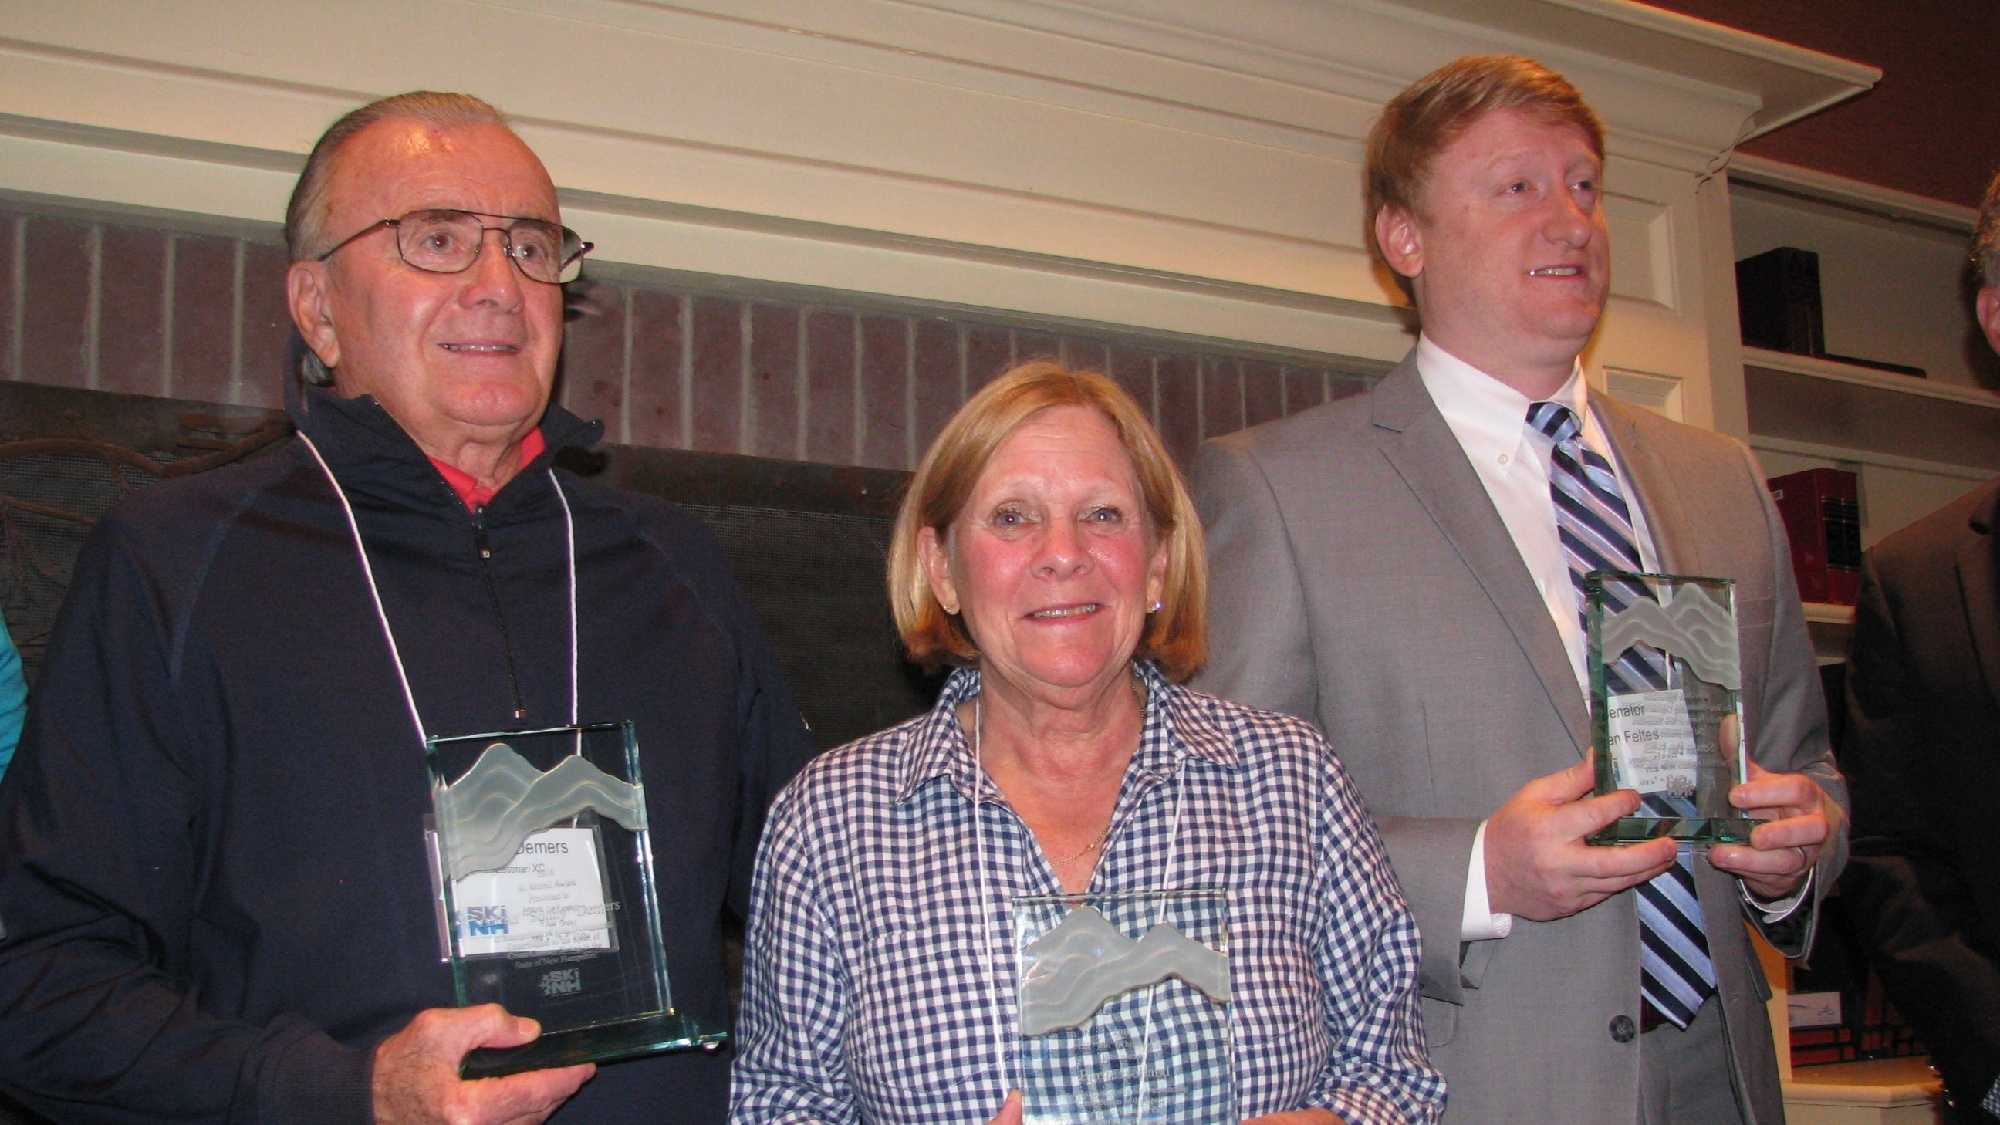 Bertie Holland, Sonny Demers and State Rep. Dan Feltes received awards from Ski NH this week.